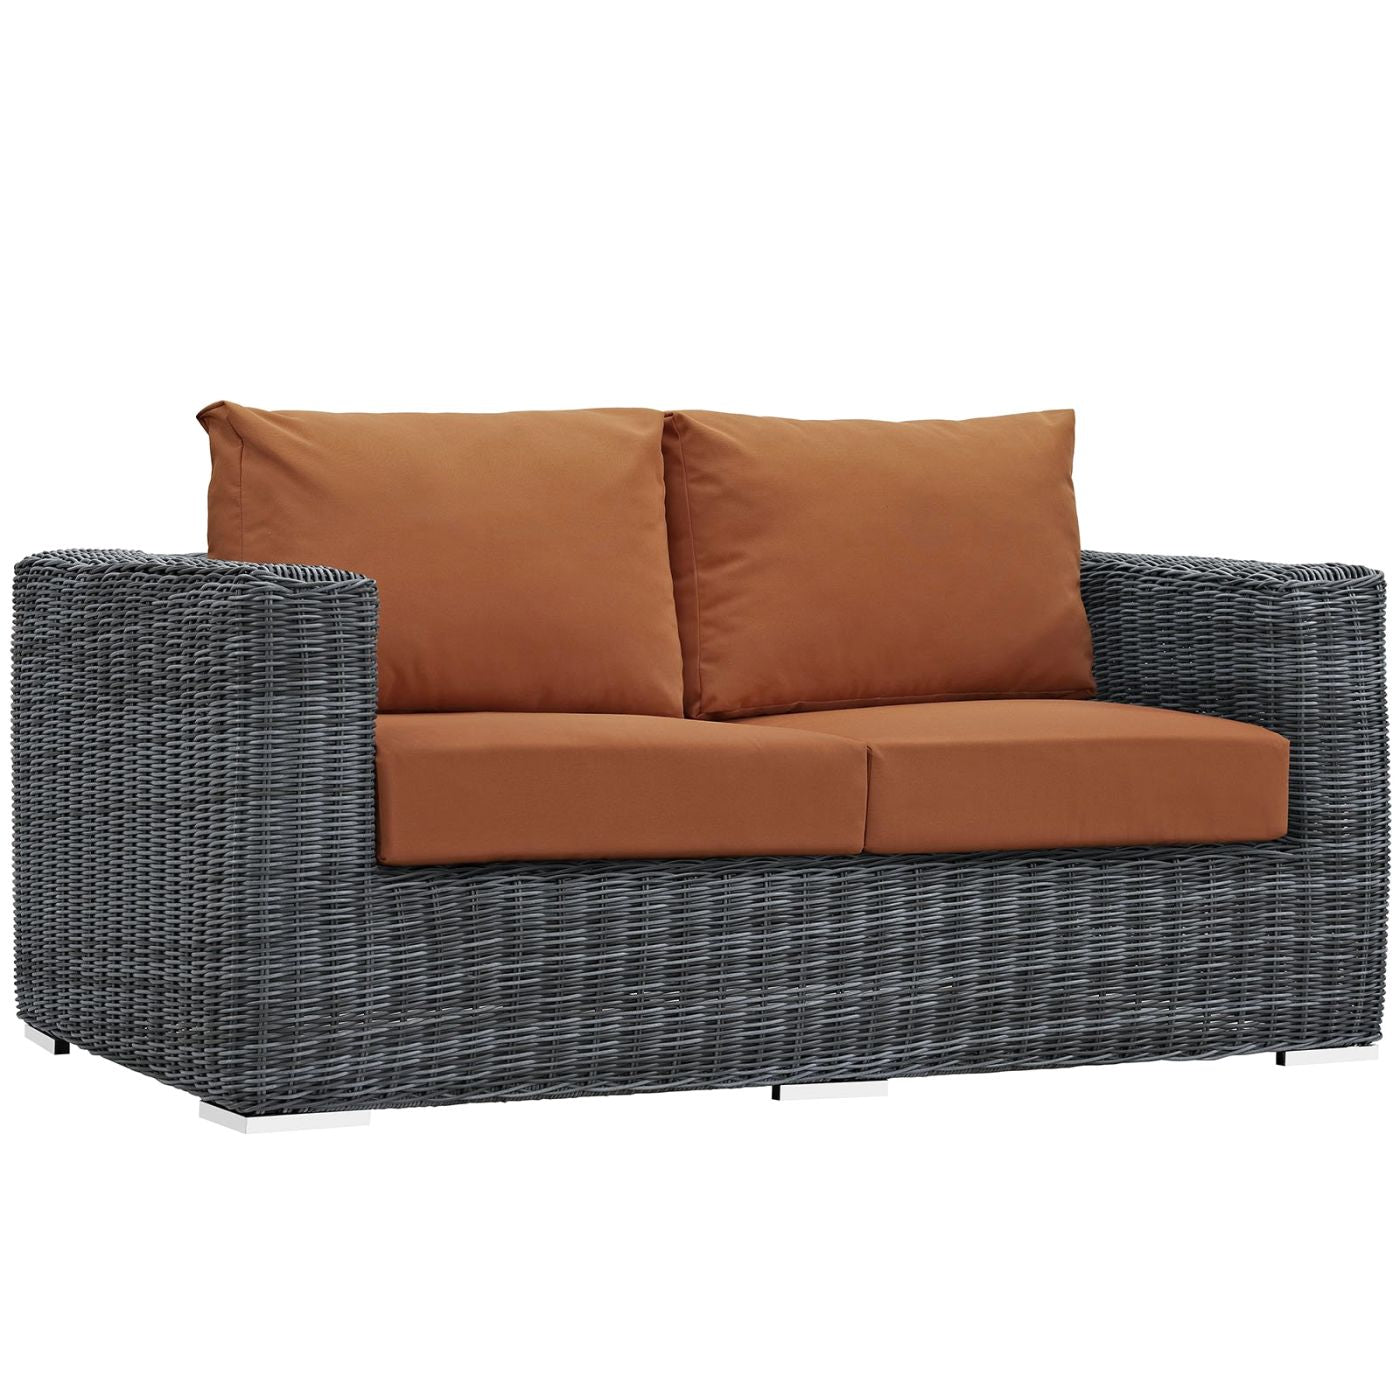 loveseat sofa cushions with best awesome patio belton outdoor of fullerton wicker furniture